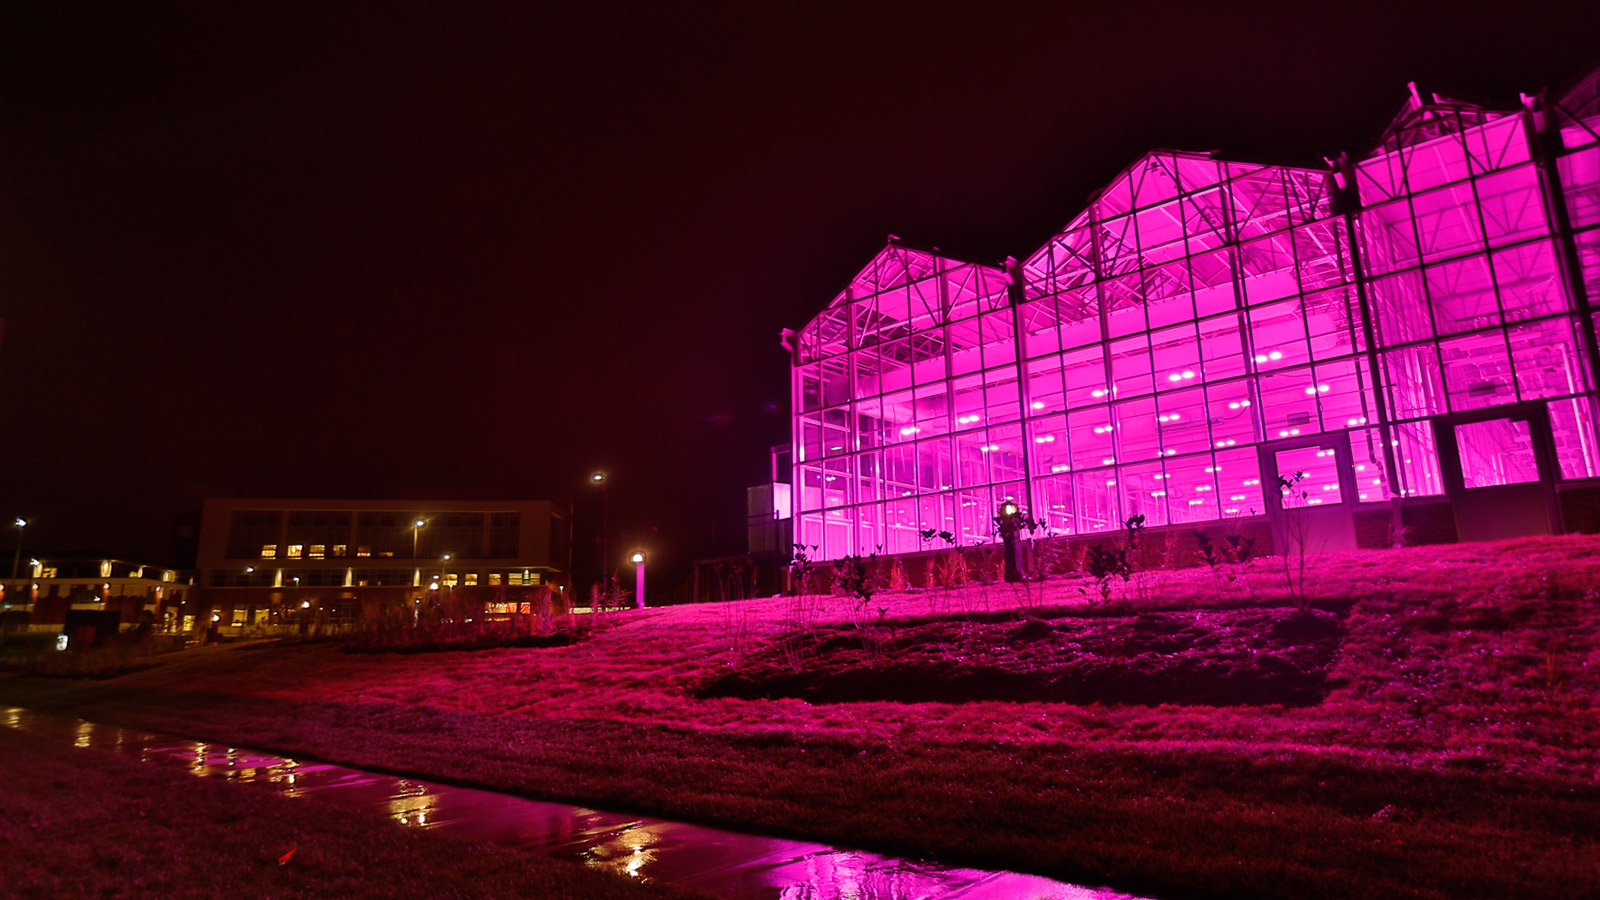 Innovation Campus Phenotyping facility at night